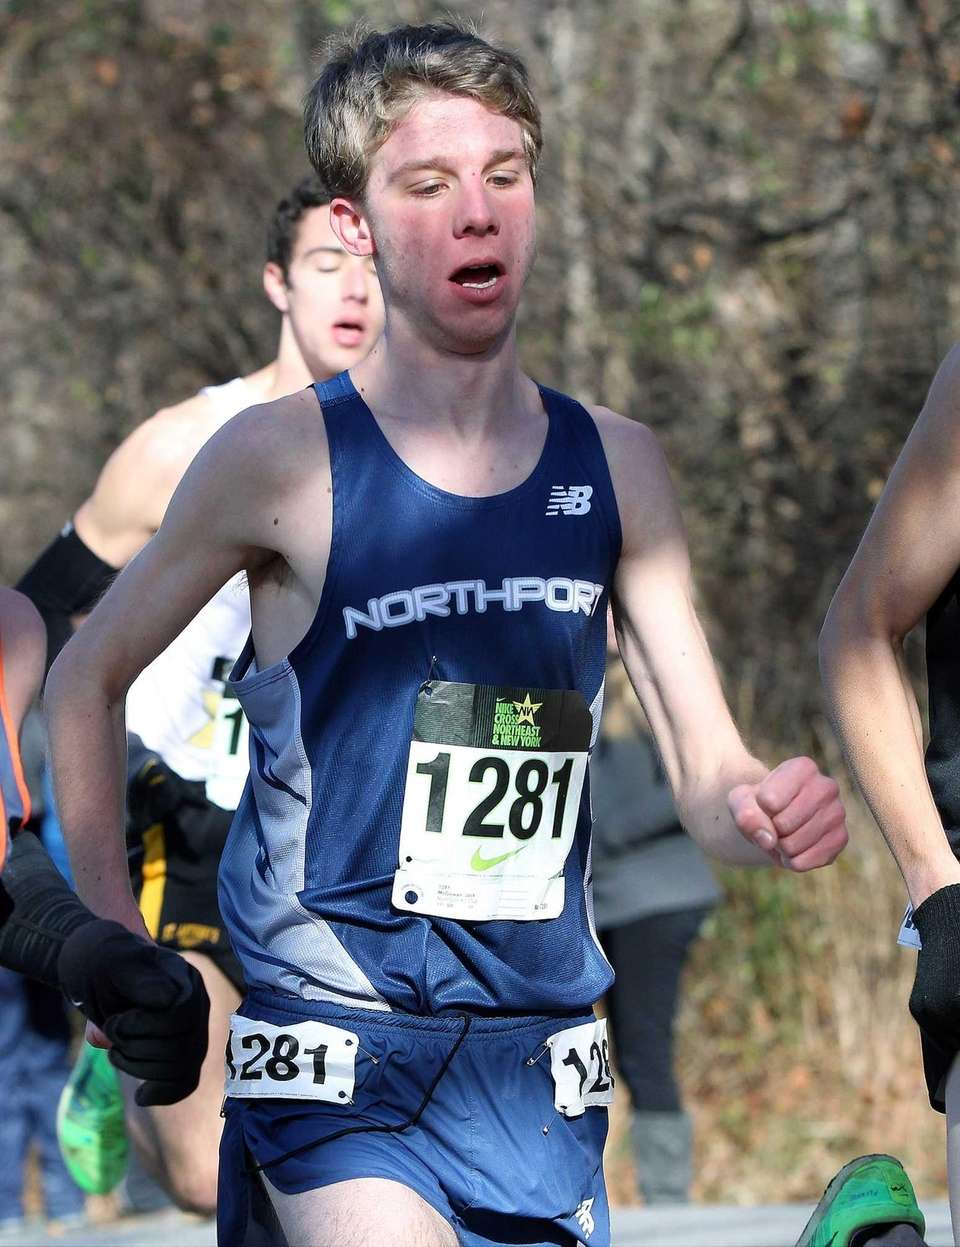 Northport's Jack McGowan enters the hills at the